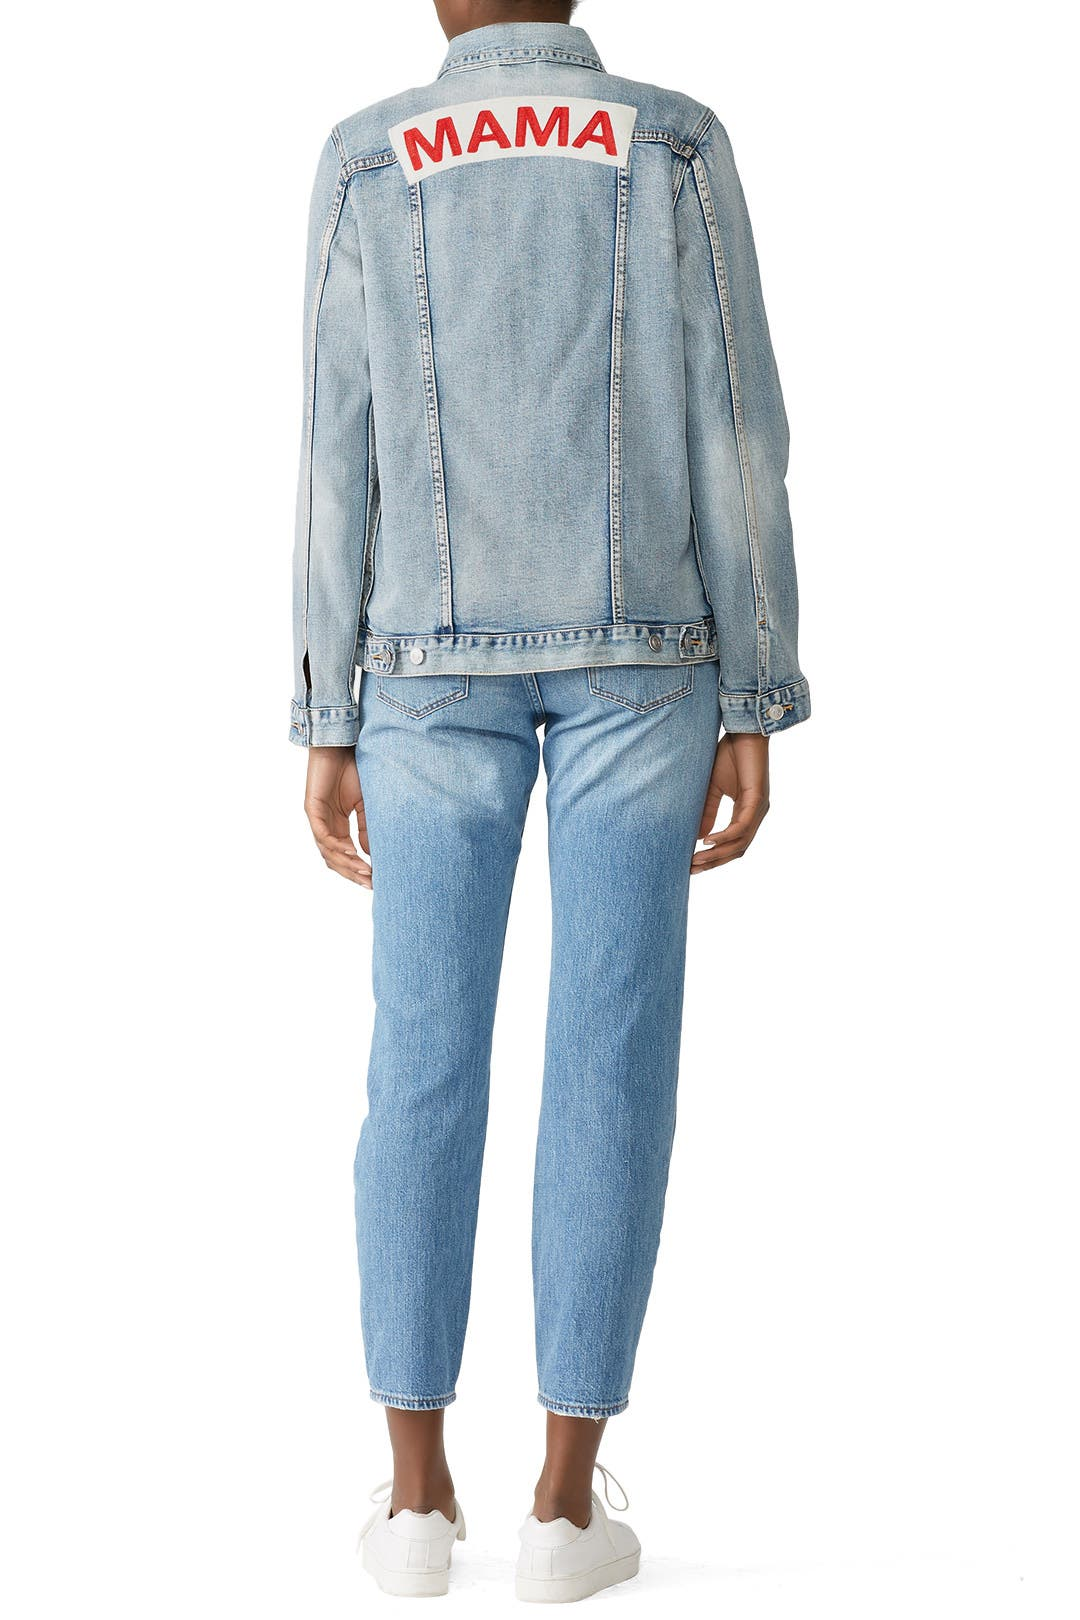 1379e1343abe3 Mama Maternity Denim Jacket by Ingrid & Isabel for $30 | Rent the Runway